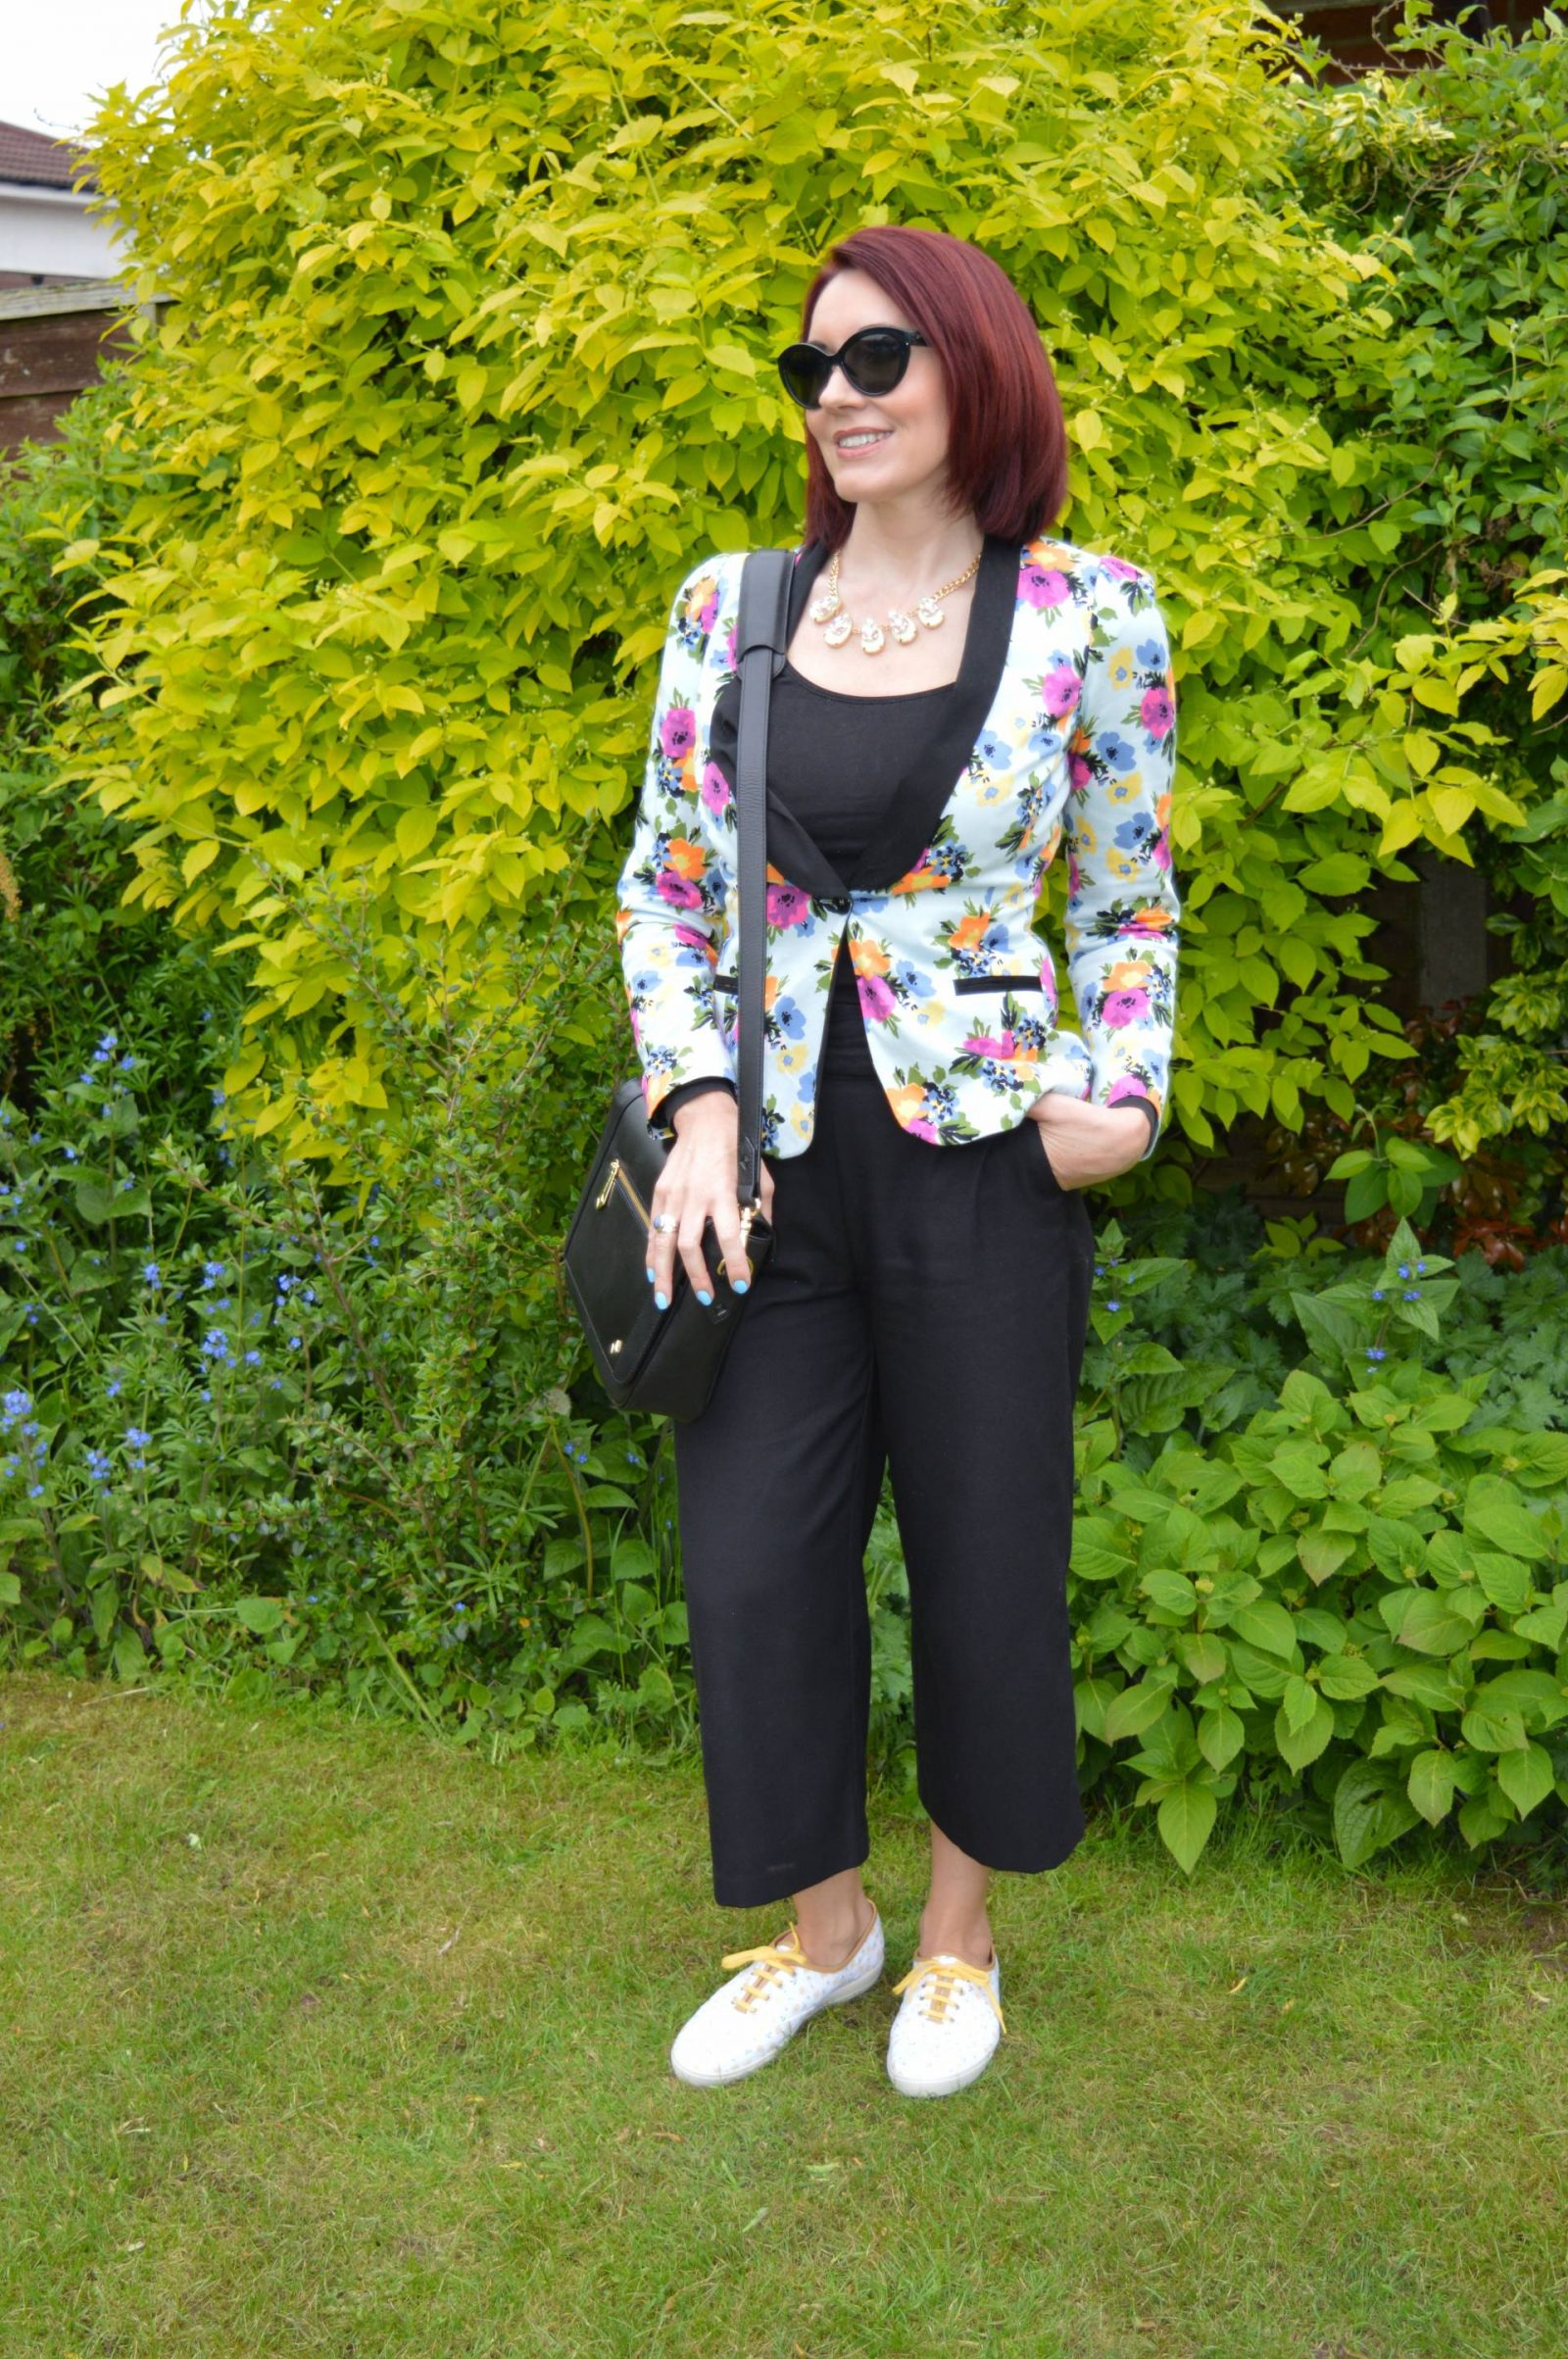 Styling floral prints for a comfy office-appropriate look, Star by Julien Macdonald floral print jacket, Jennifer Hamley Mini KT bag, Hotter Mabel daffodil shoes